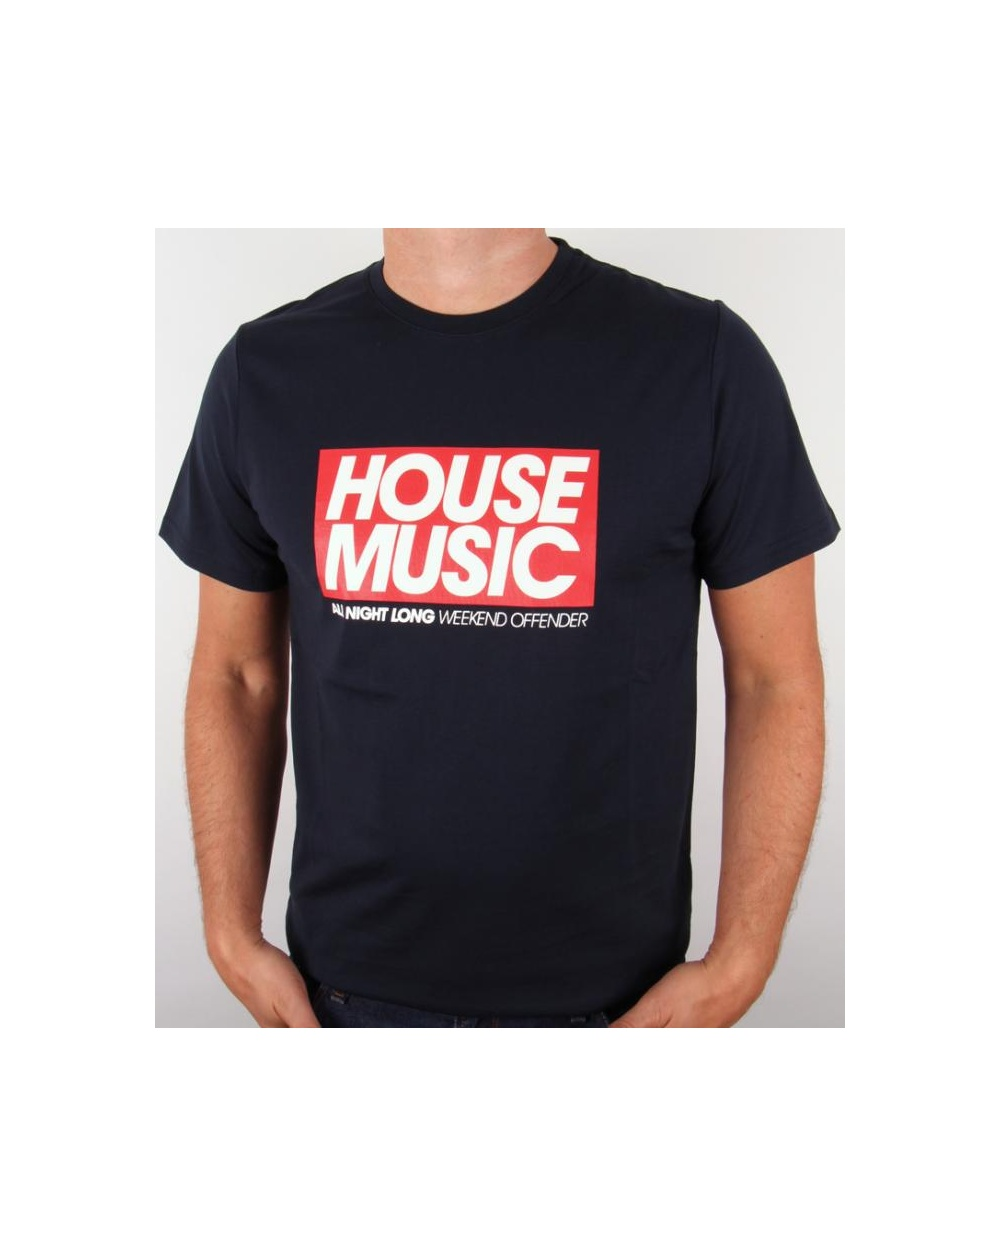 House music t shirts designs house design Music shirt design ideas